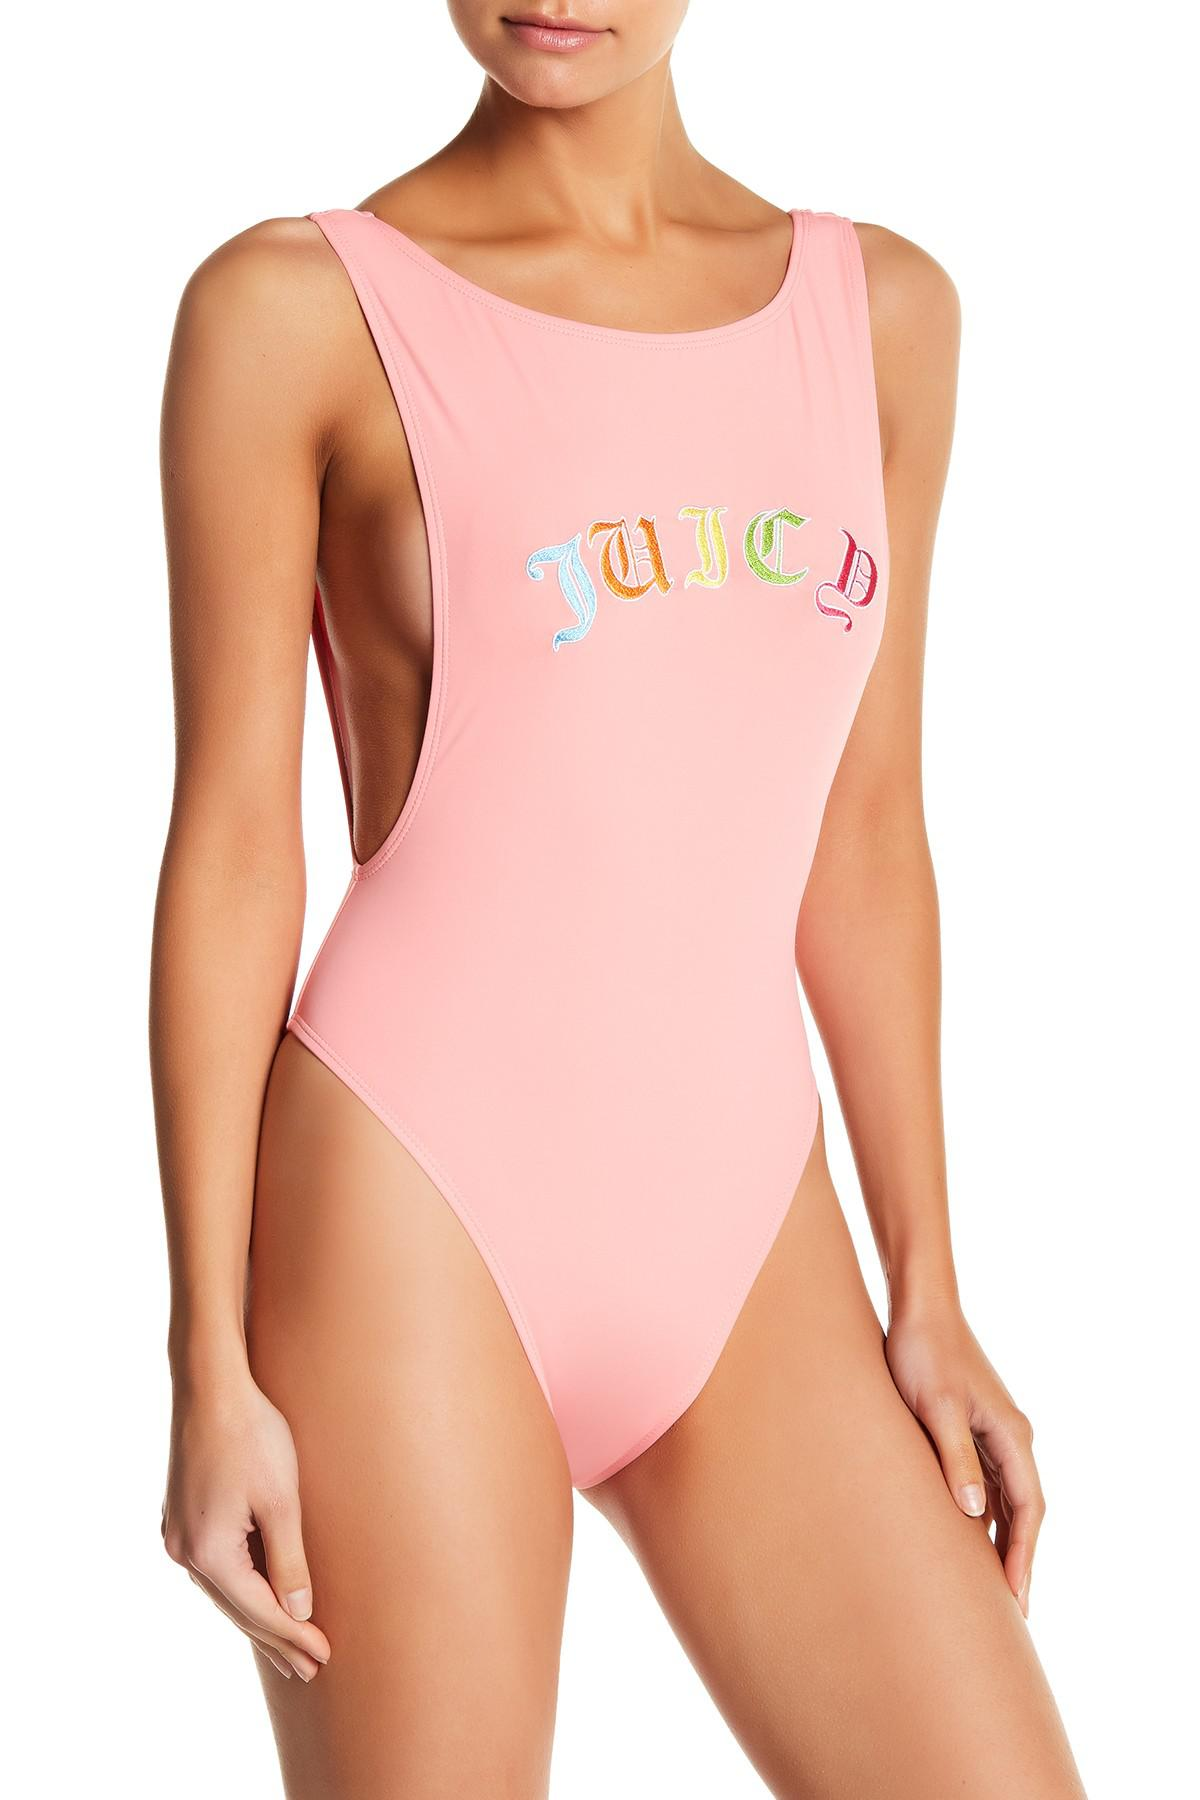 708d183a4d84c Juicy Couture Embroidered Juicy One-piece Swimsuit in Pink - Lyst